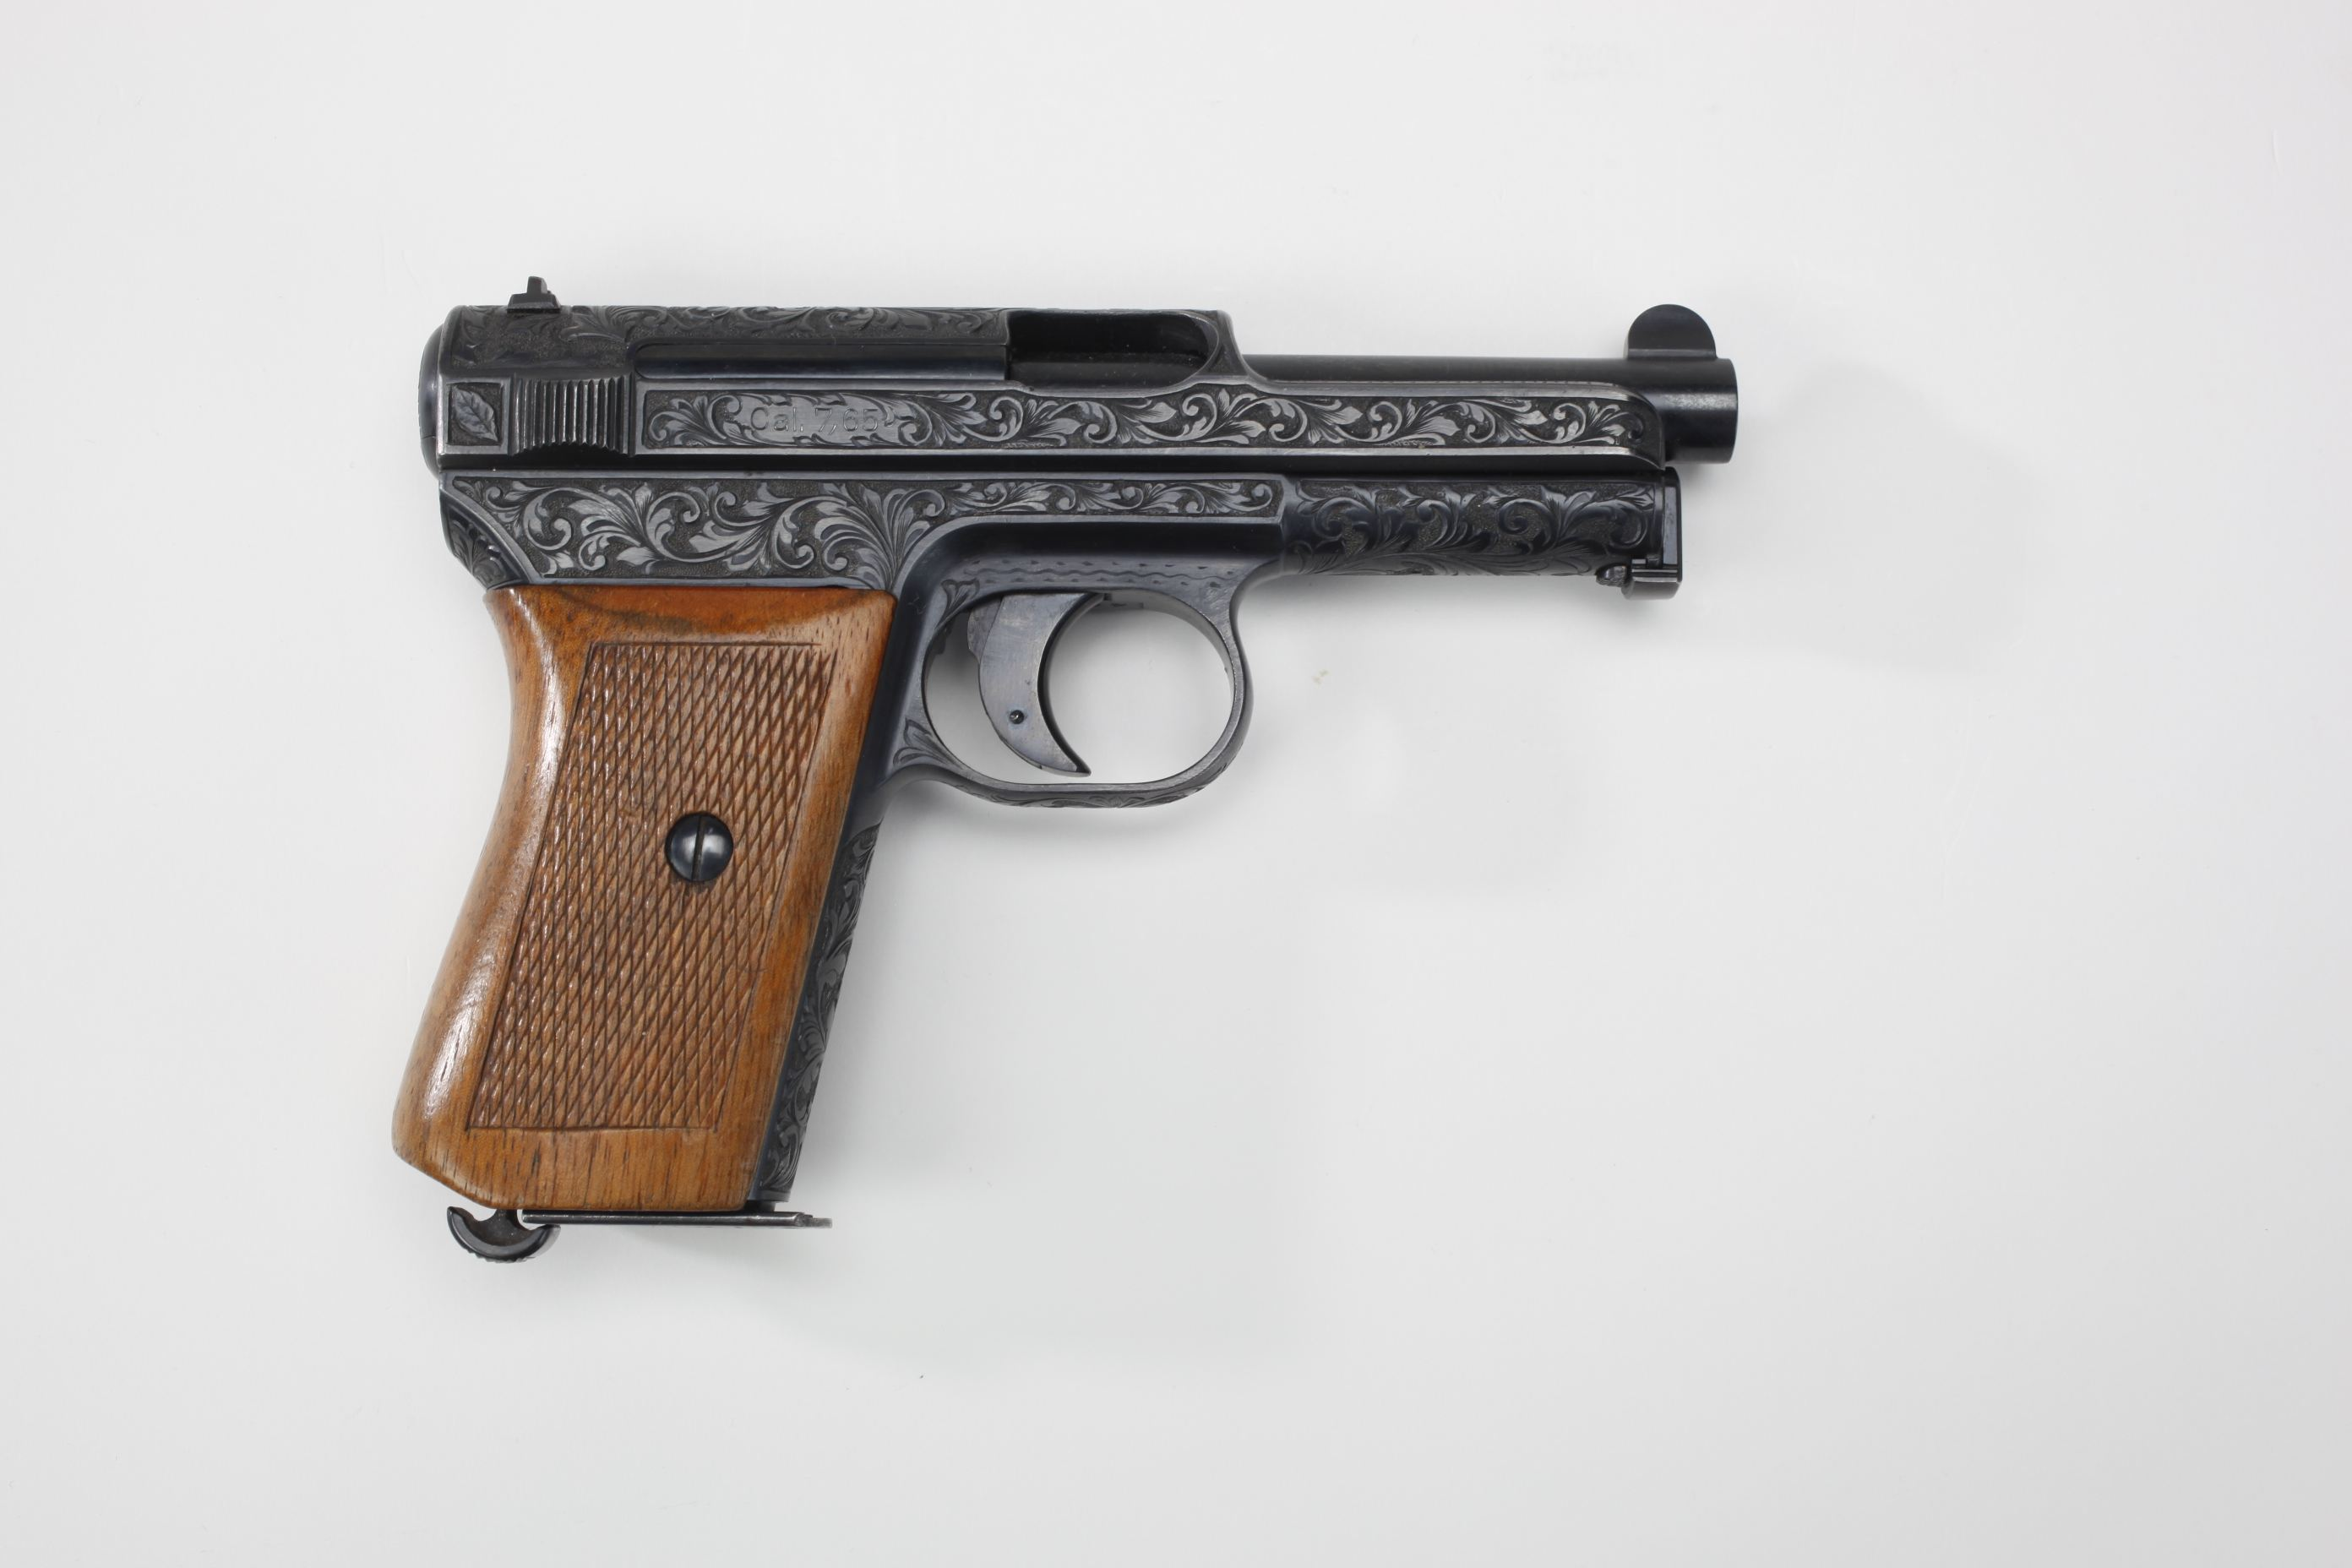 Mauser (Oberndorf, Germany) Model 1934 Semi-Automatic Pistol